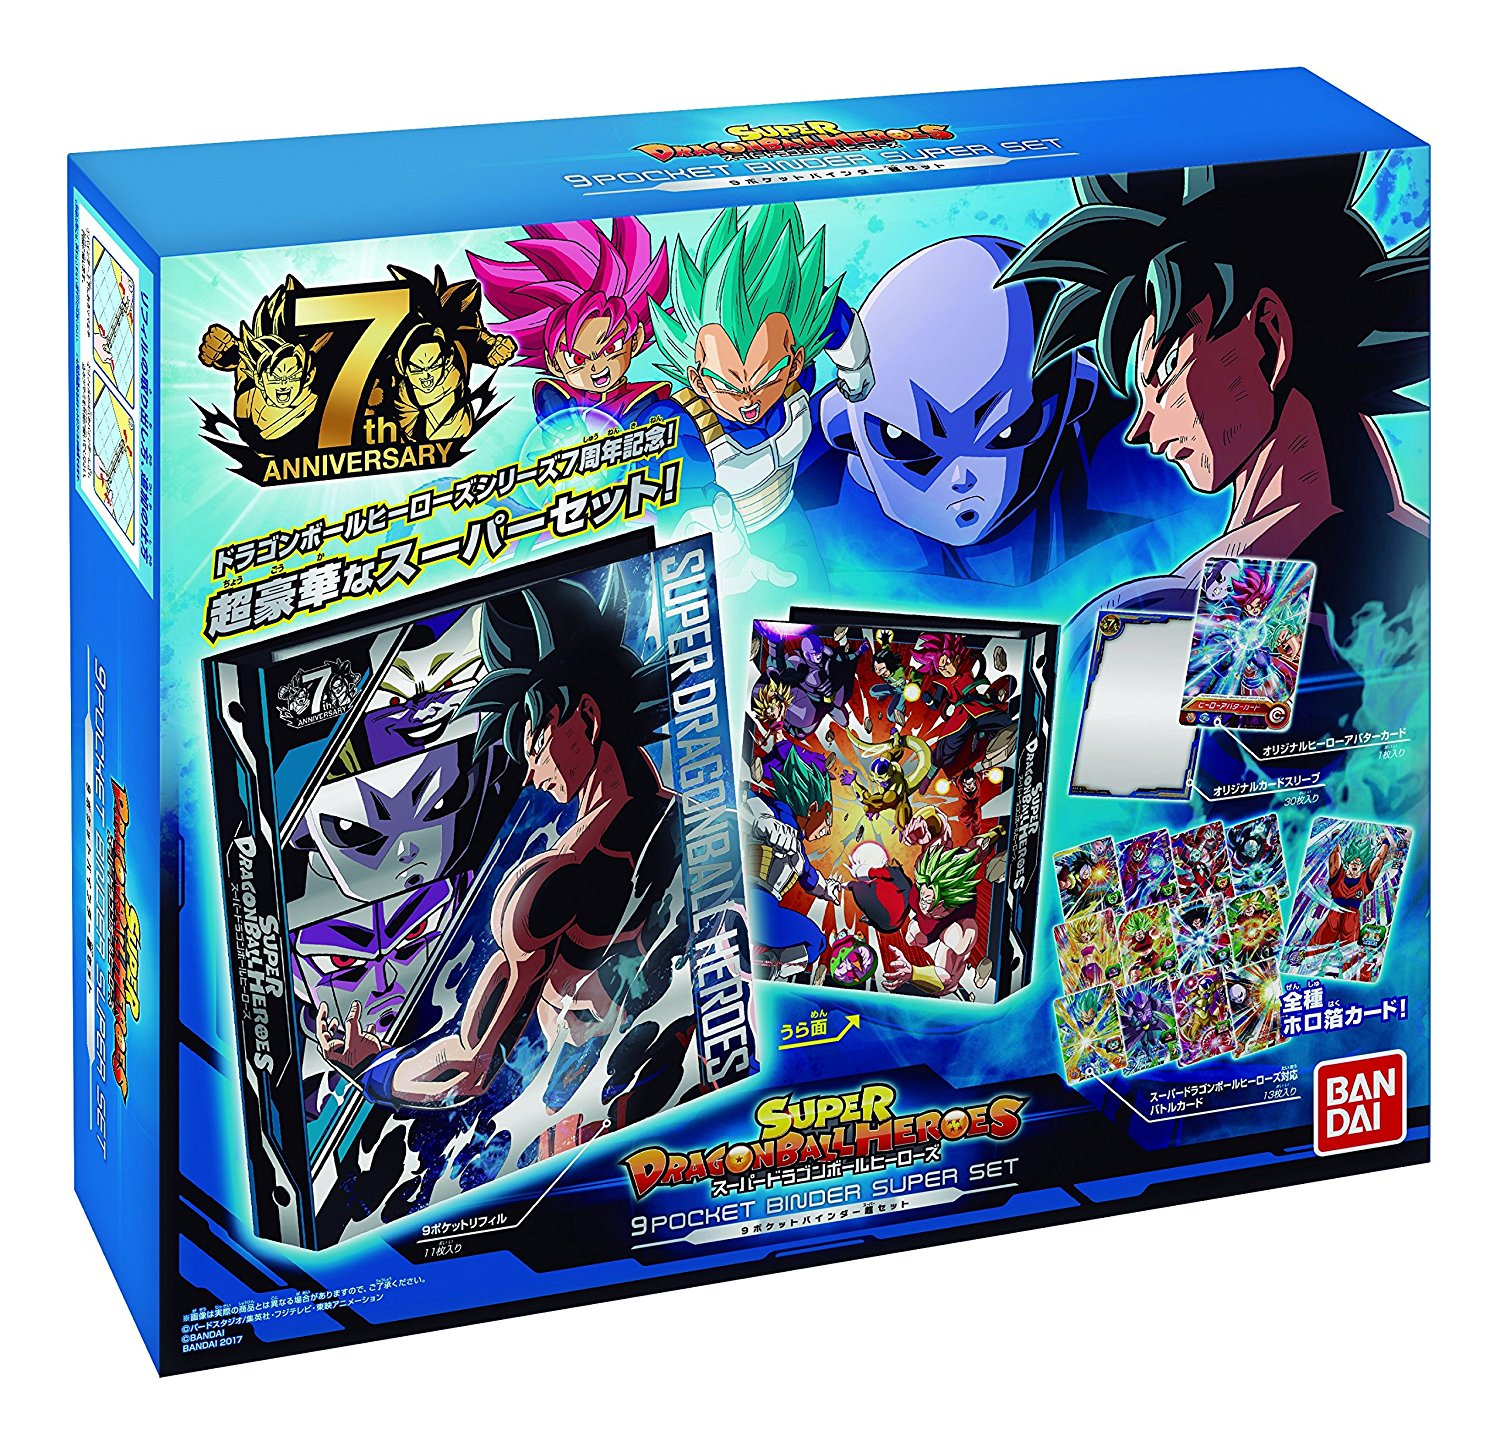 Super Dragon Ball Heroes : 9 Pocket Binder Super Set